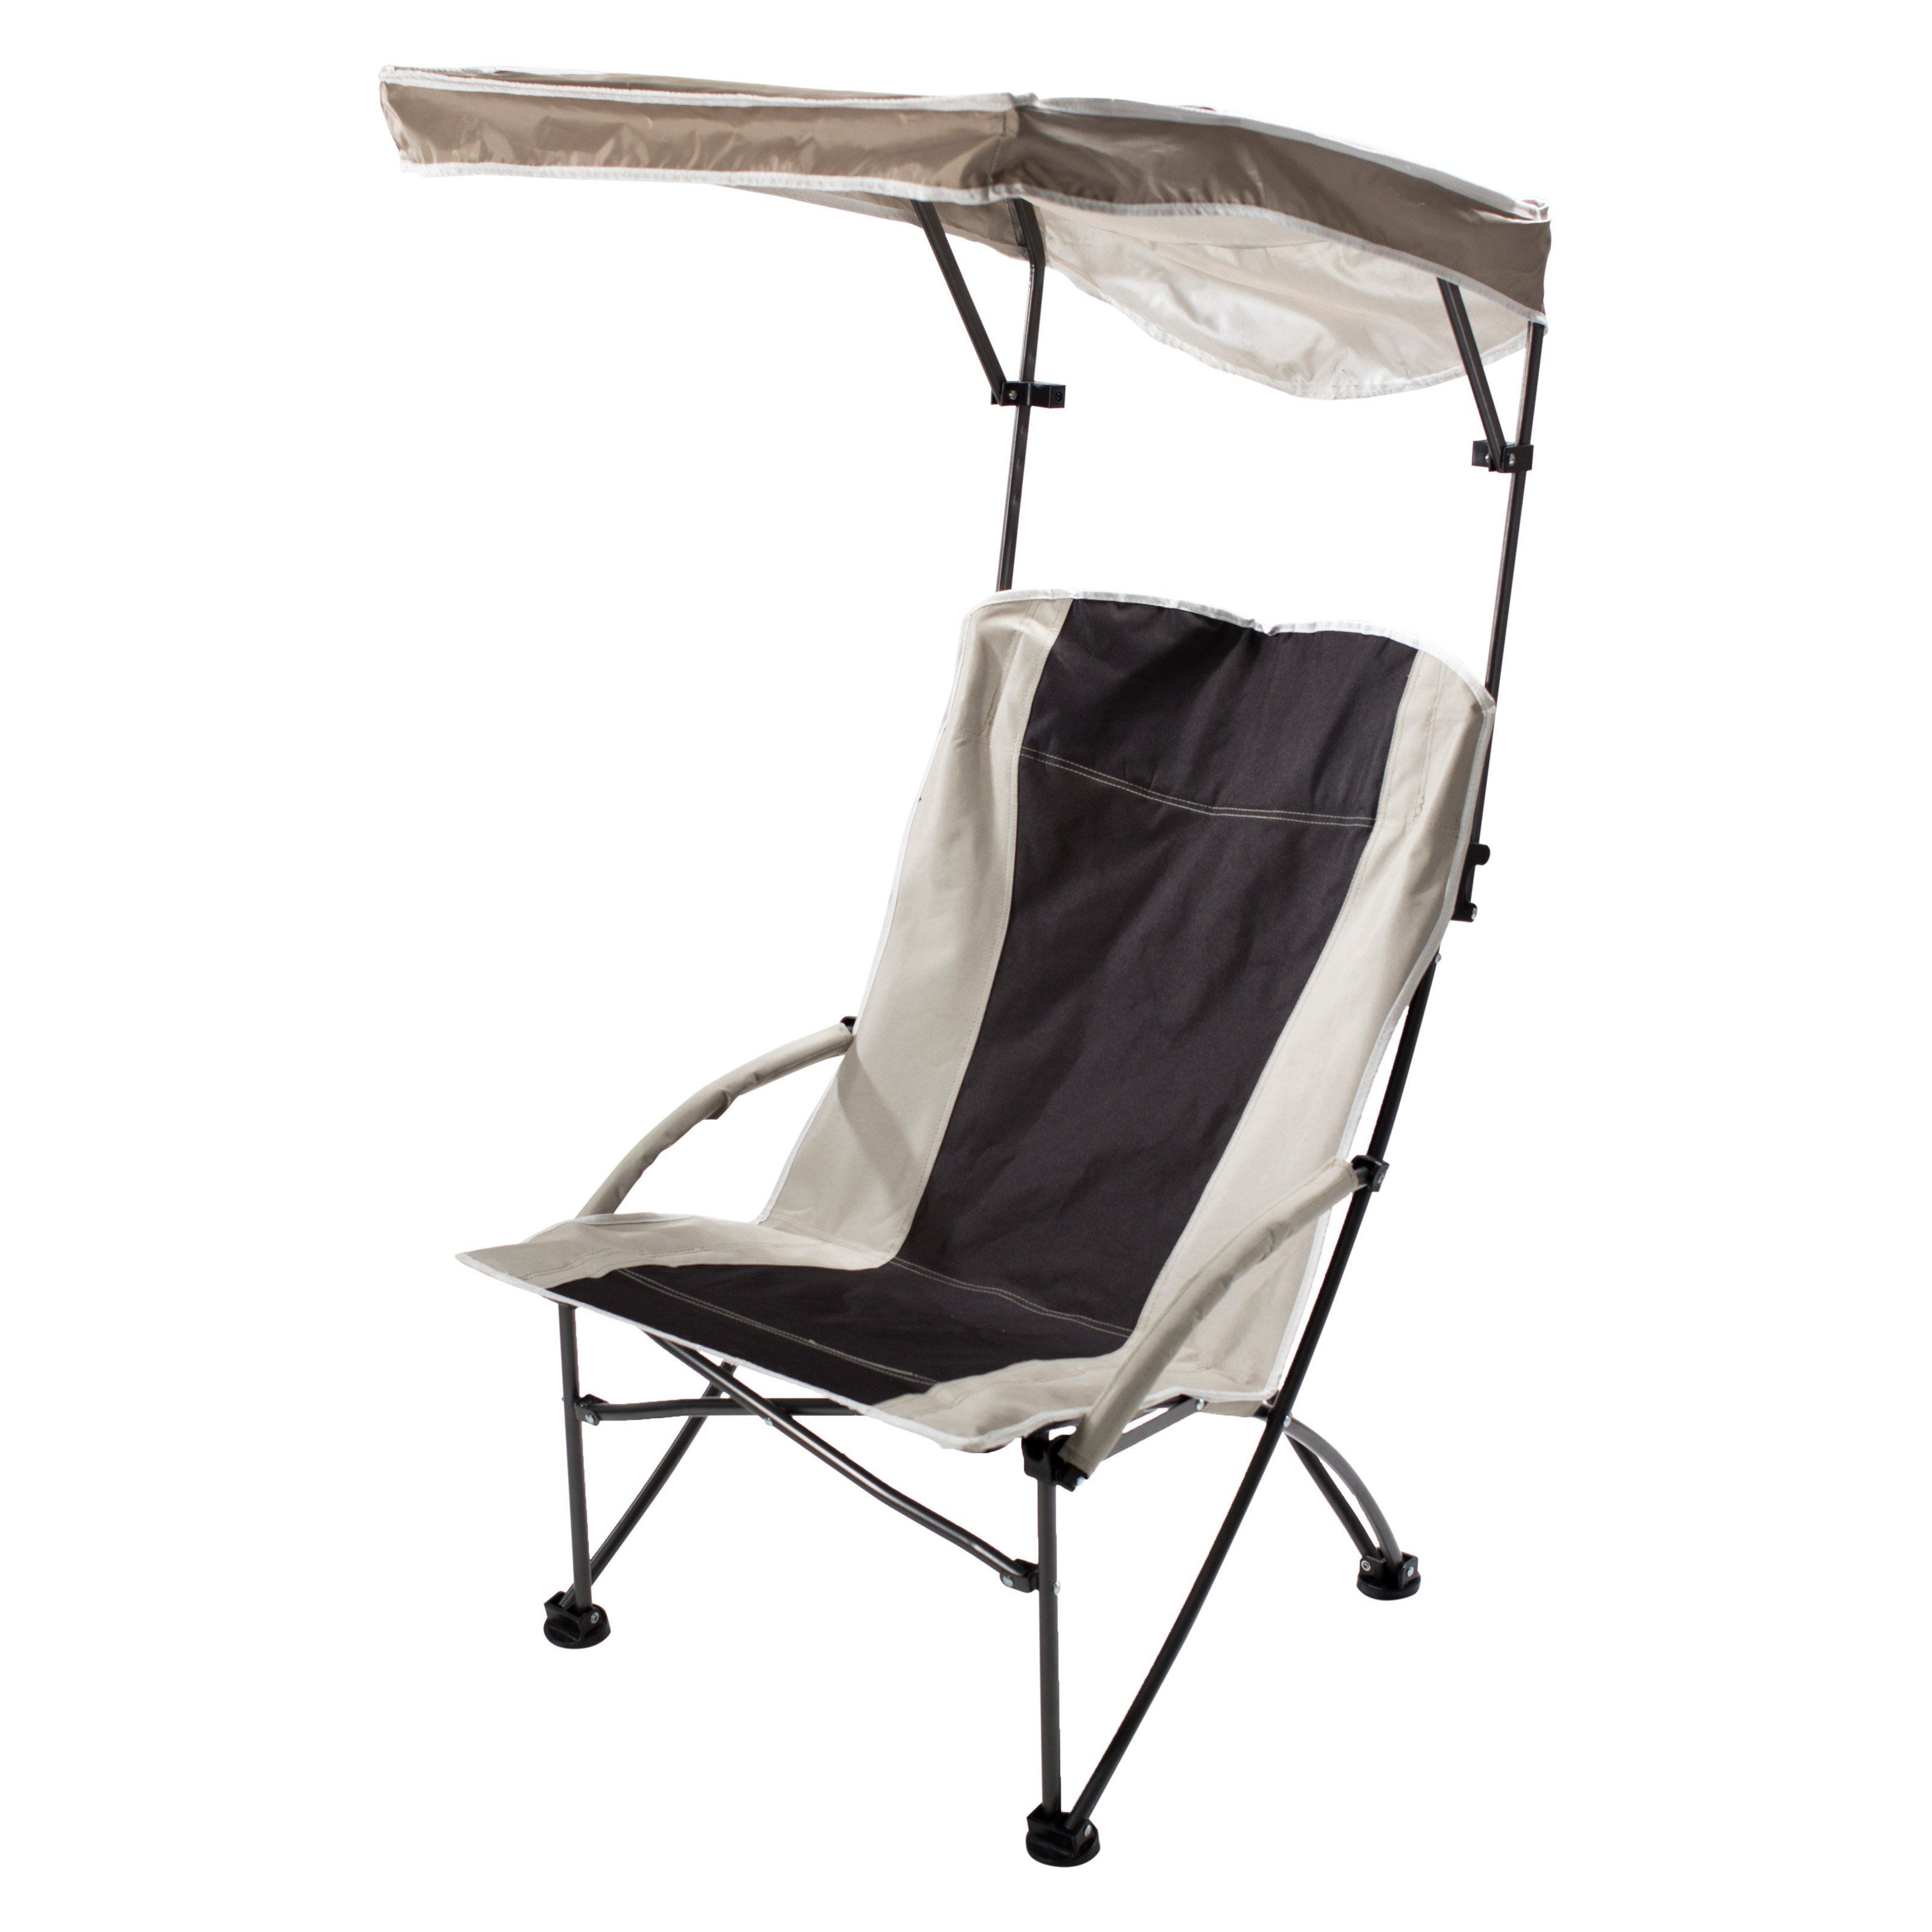 Outdoor Quick Shade Pro fort Folding High Camp Chair with